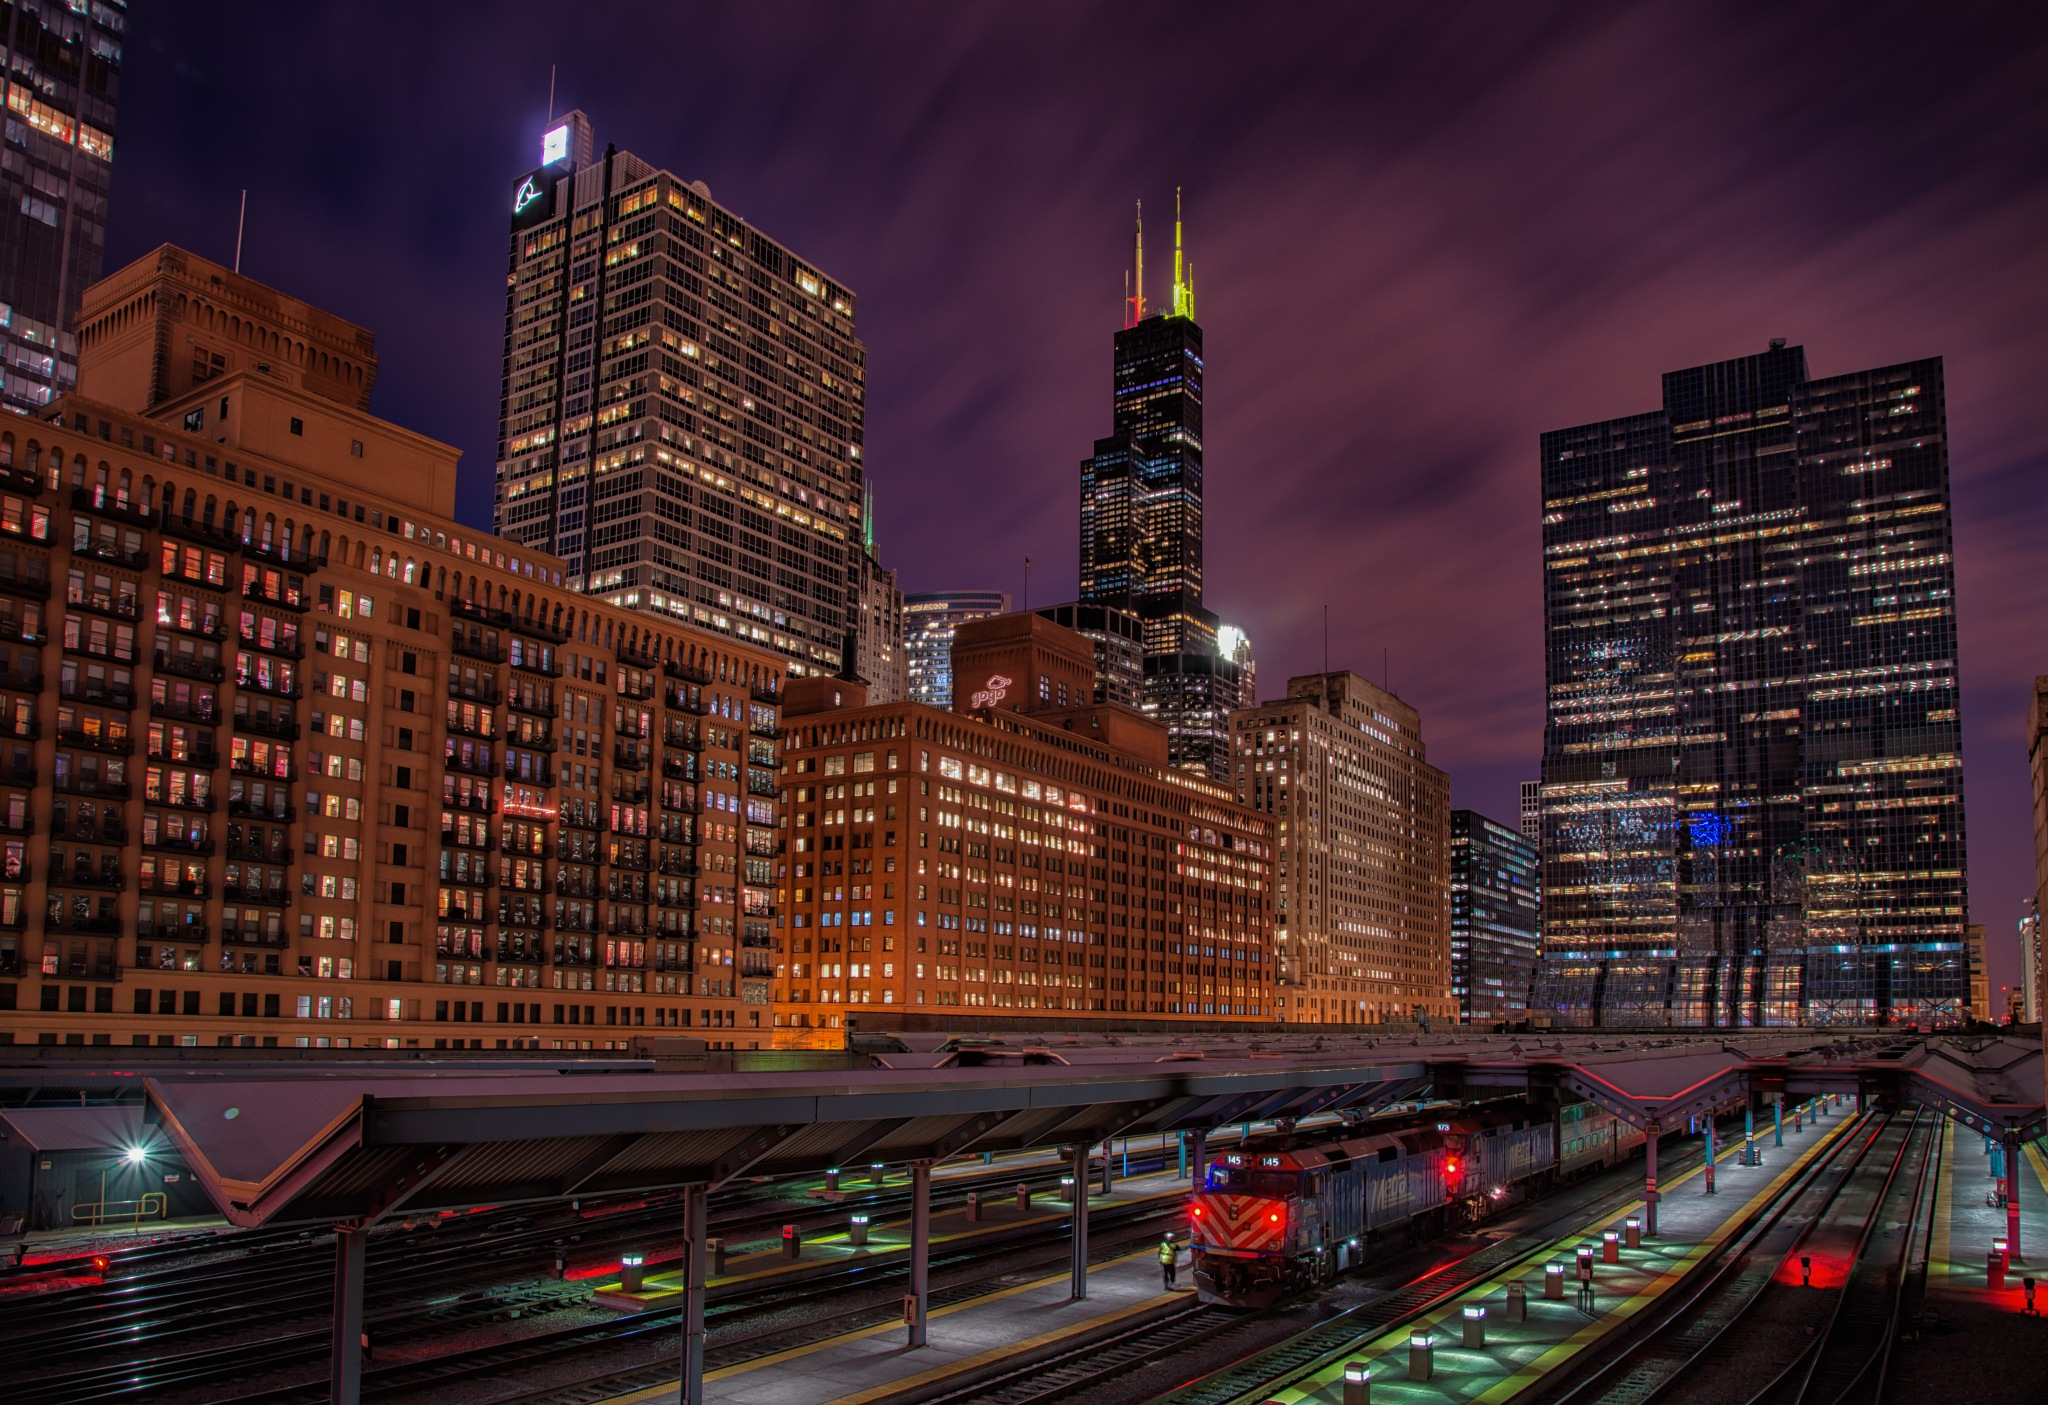 Metra zone by Raf Winterpacht